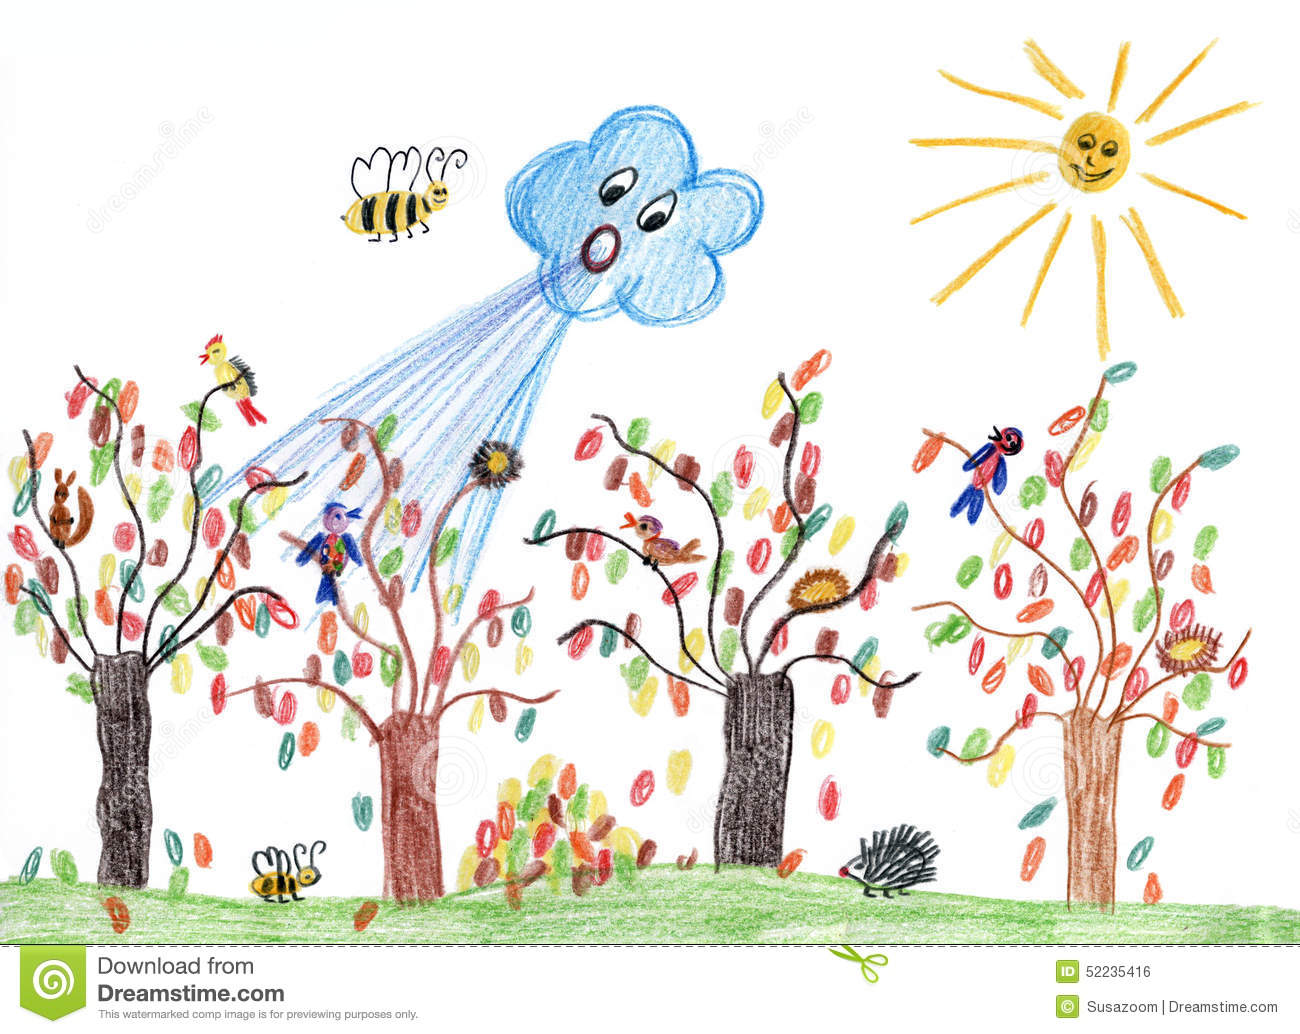 Wind blows leaves tree. Clipart le vent